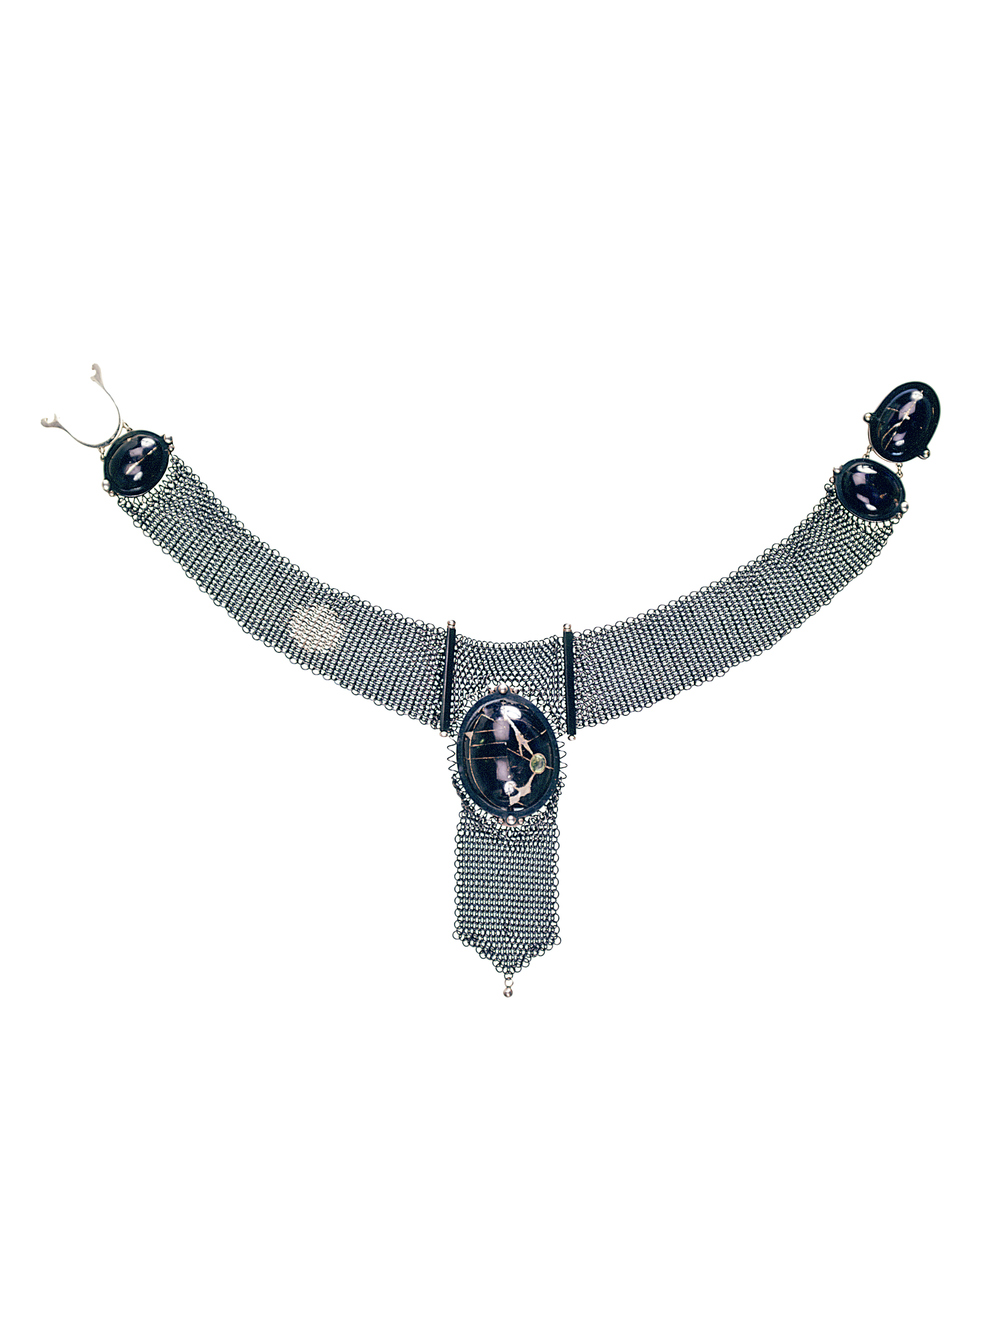 TIG Coffee Bean Choker 1970.jpg